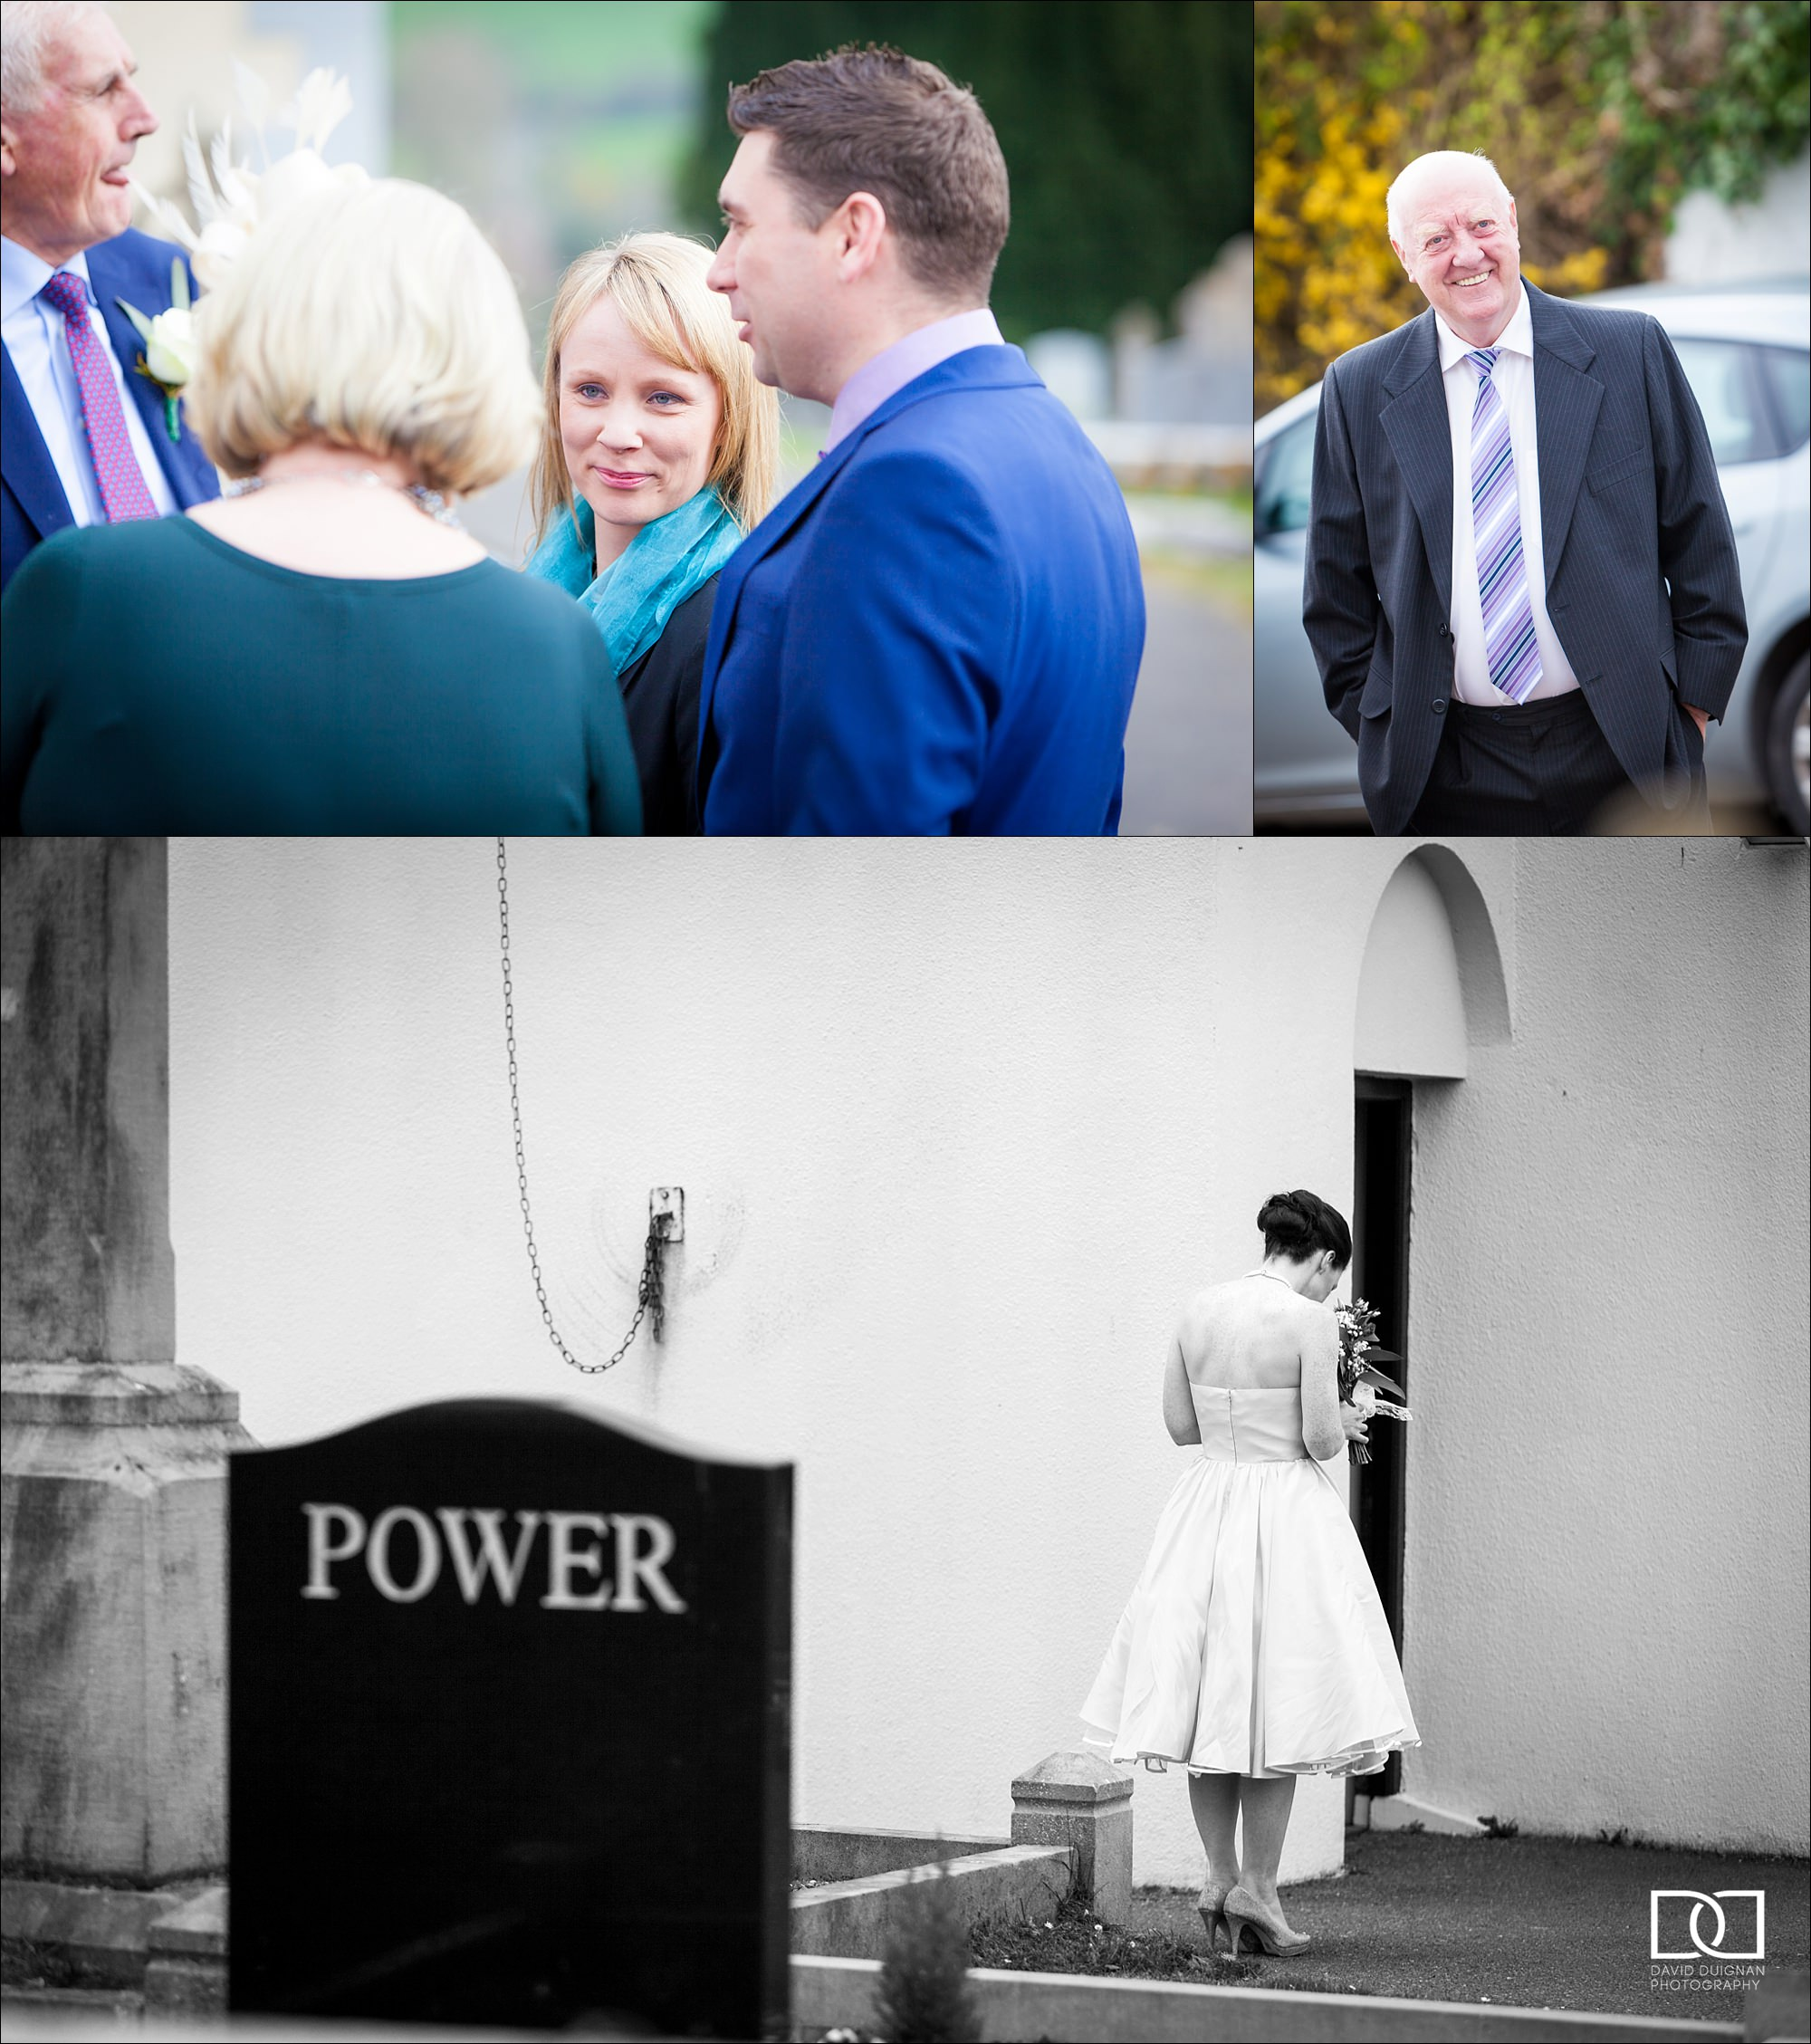 dublin wedding photographer david duignan photography horetown house wedding wexford Ireland 0011